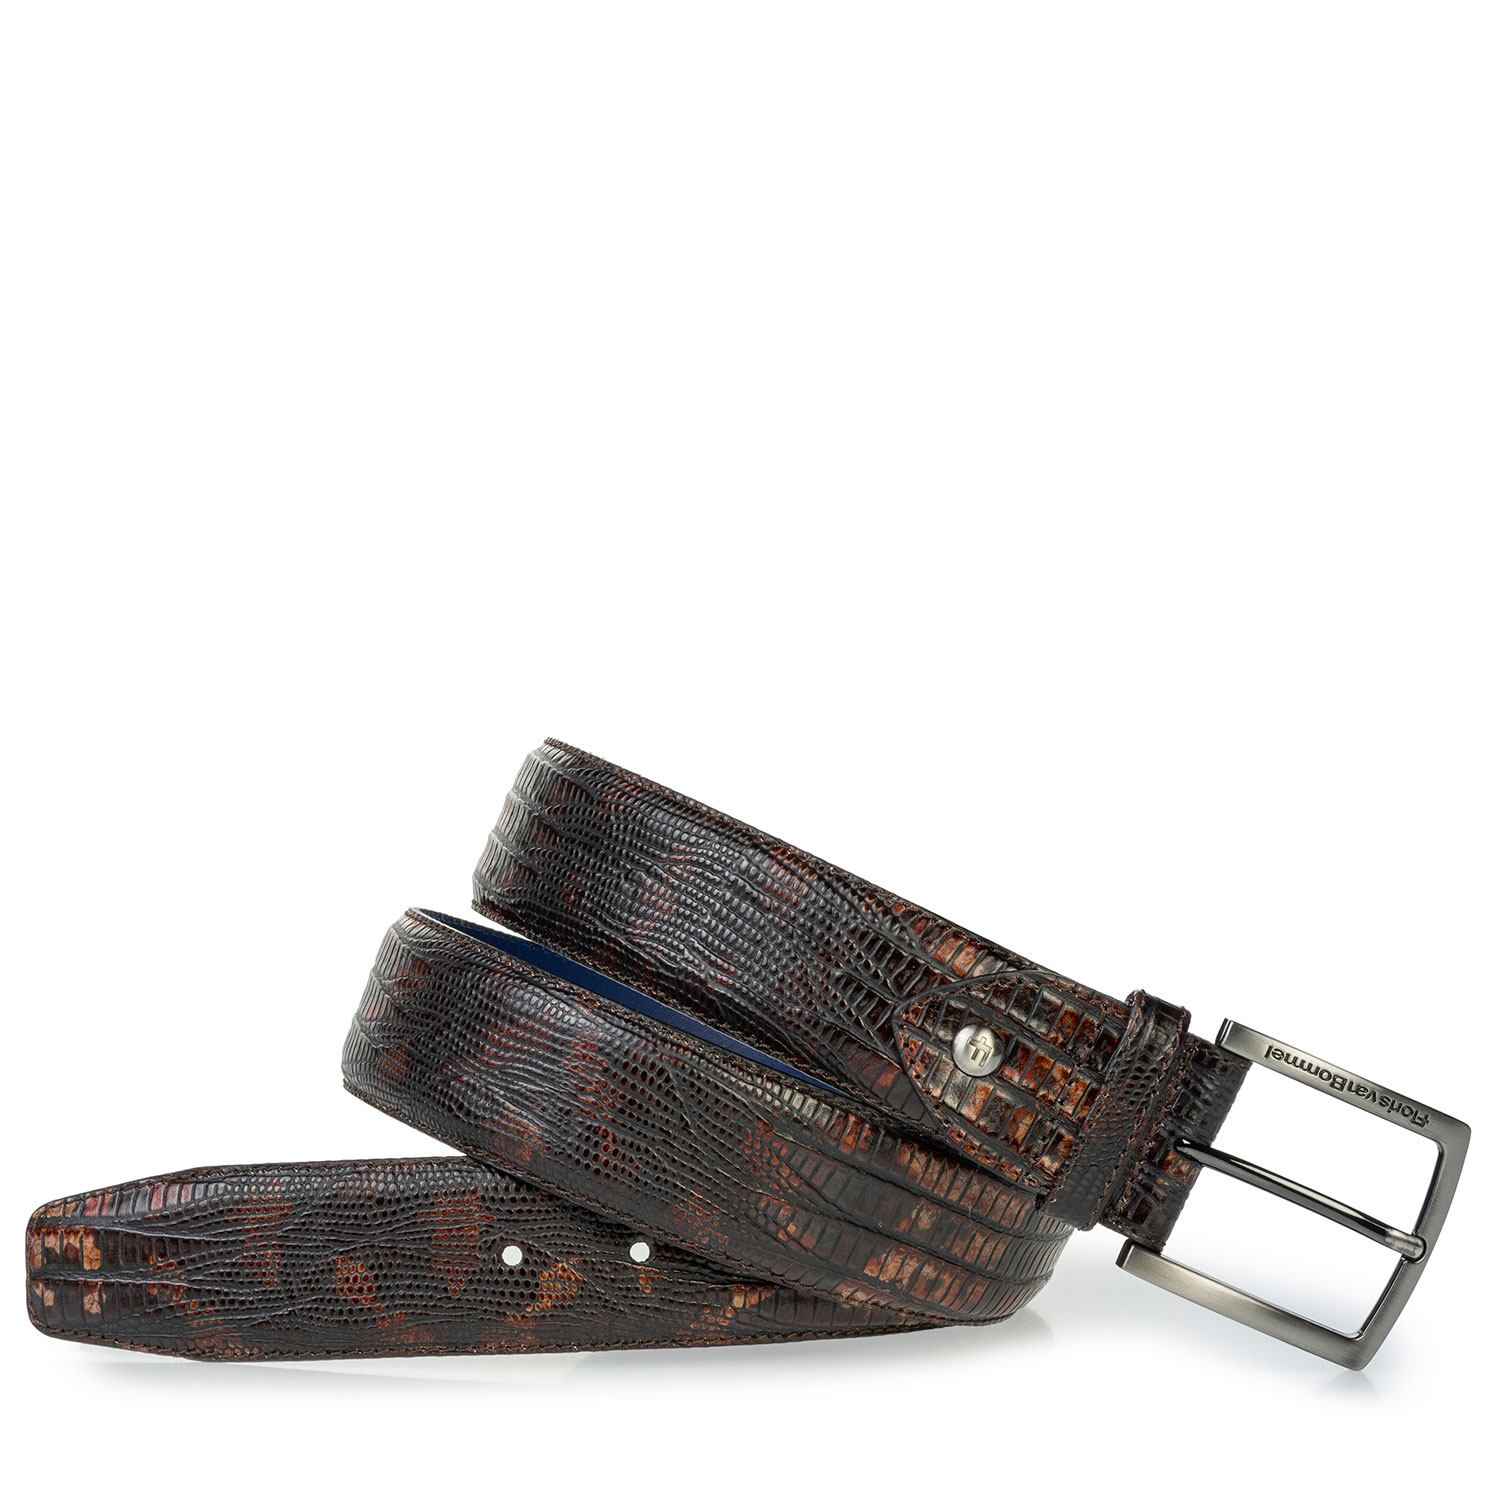 75202/70 - Leather belt lizard print cognac